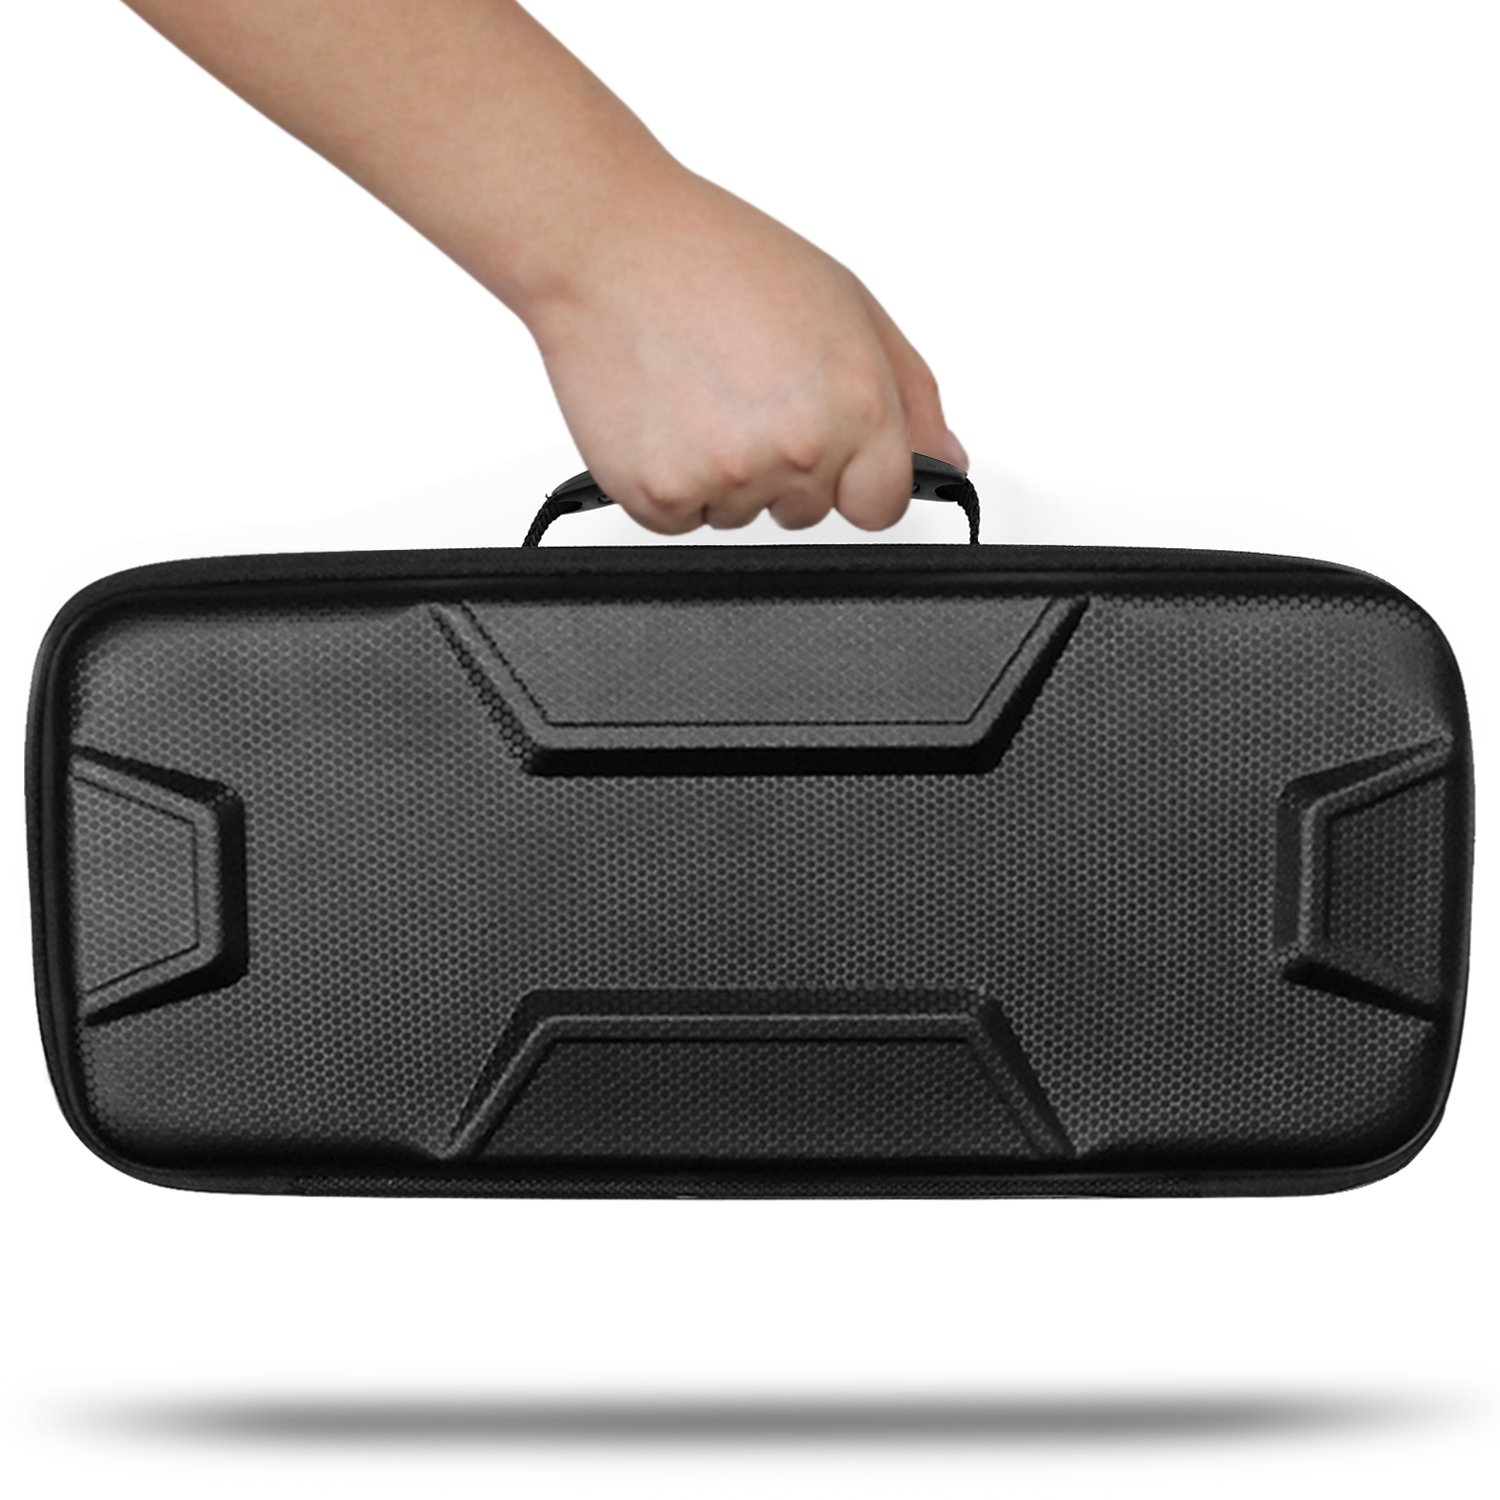 Carrying case for Zhiyun Smooth 4, Portable Protection Handbag Storage Shockproof Boxes for Zhiyun Smooth 4